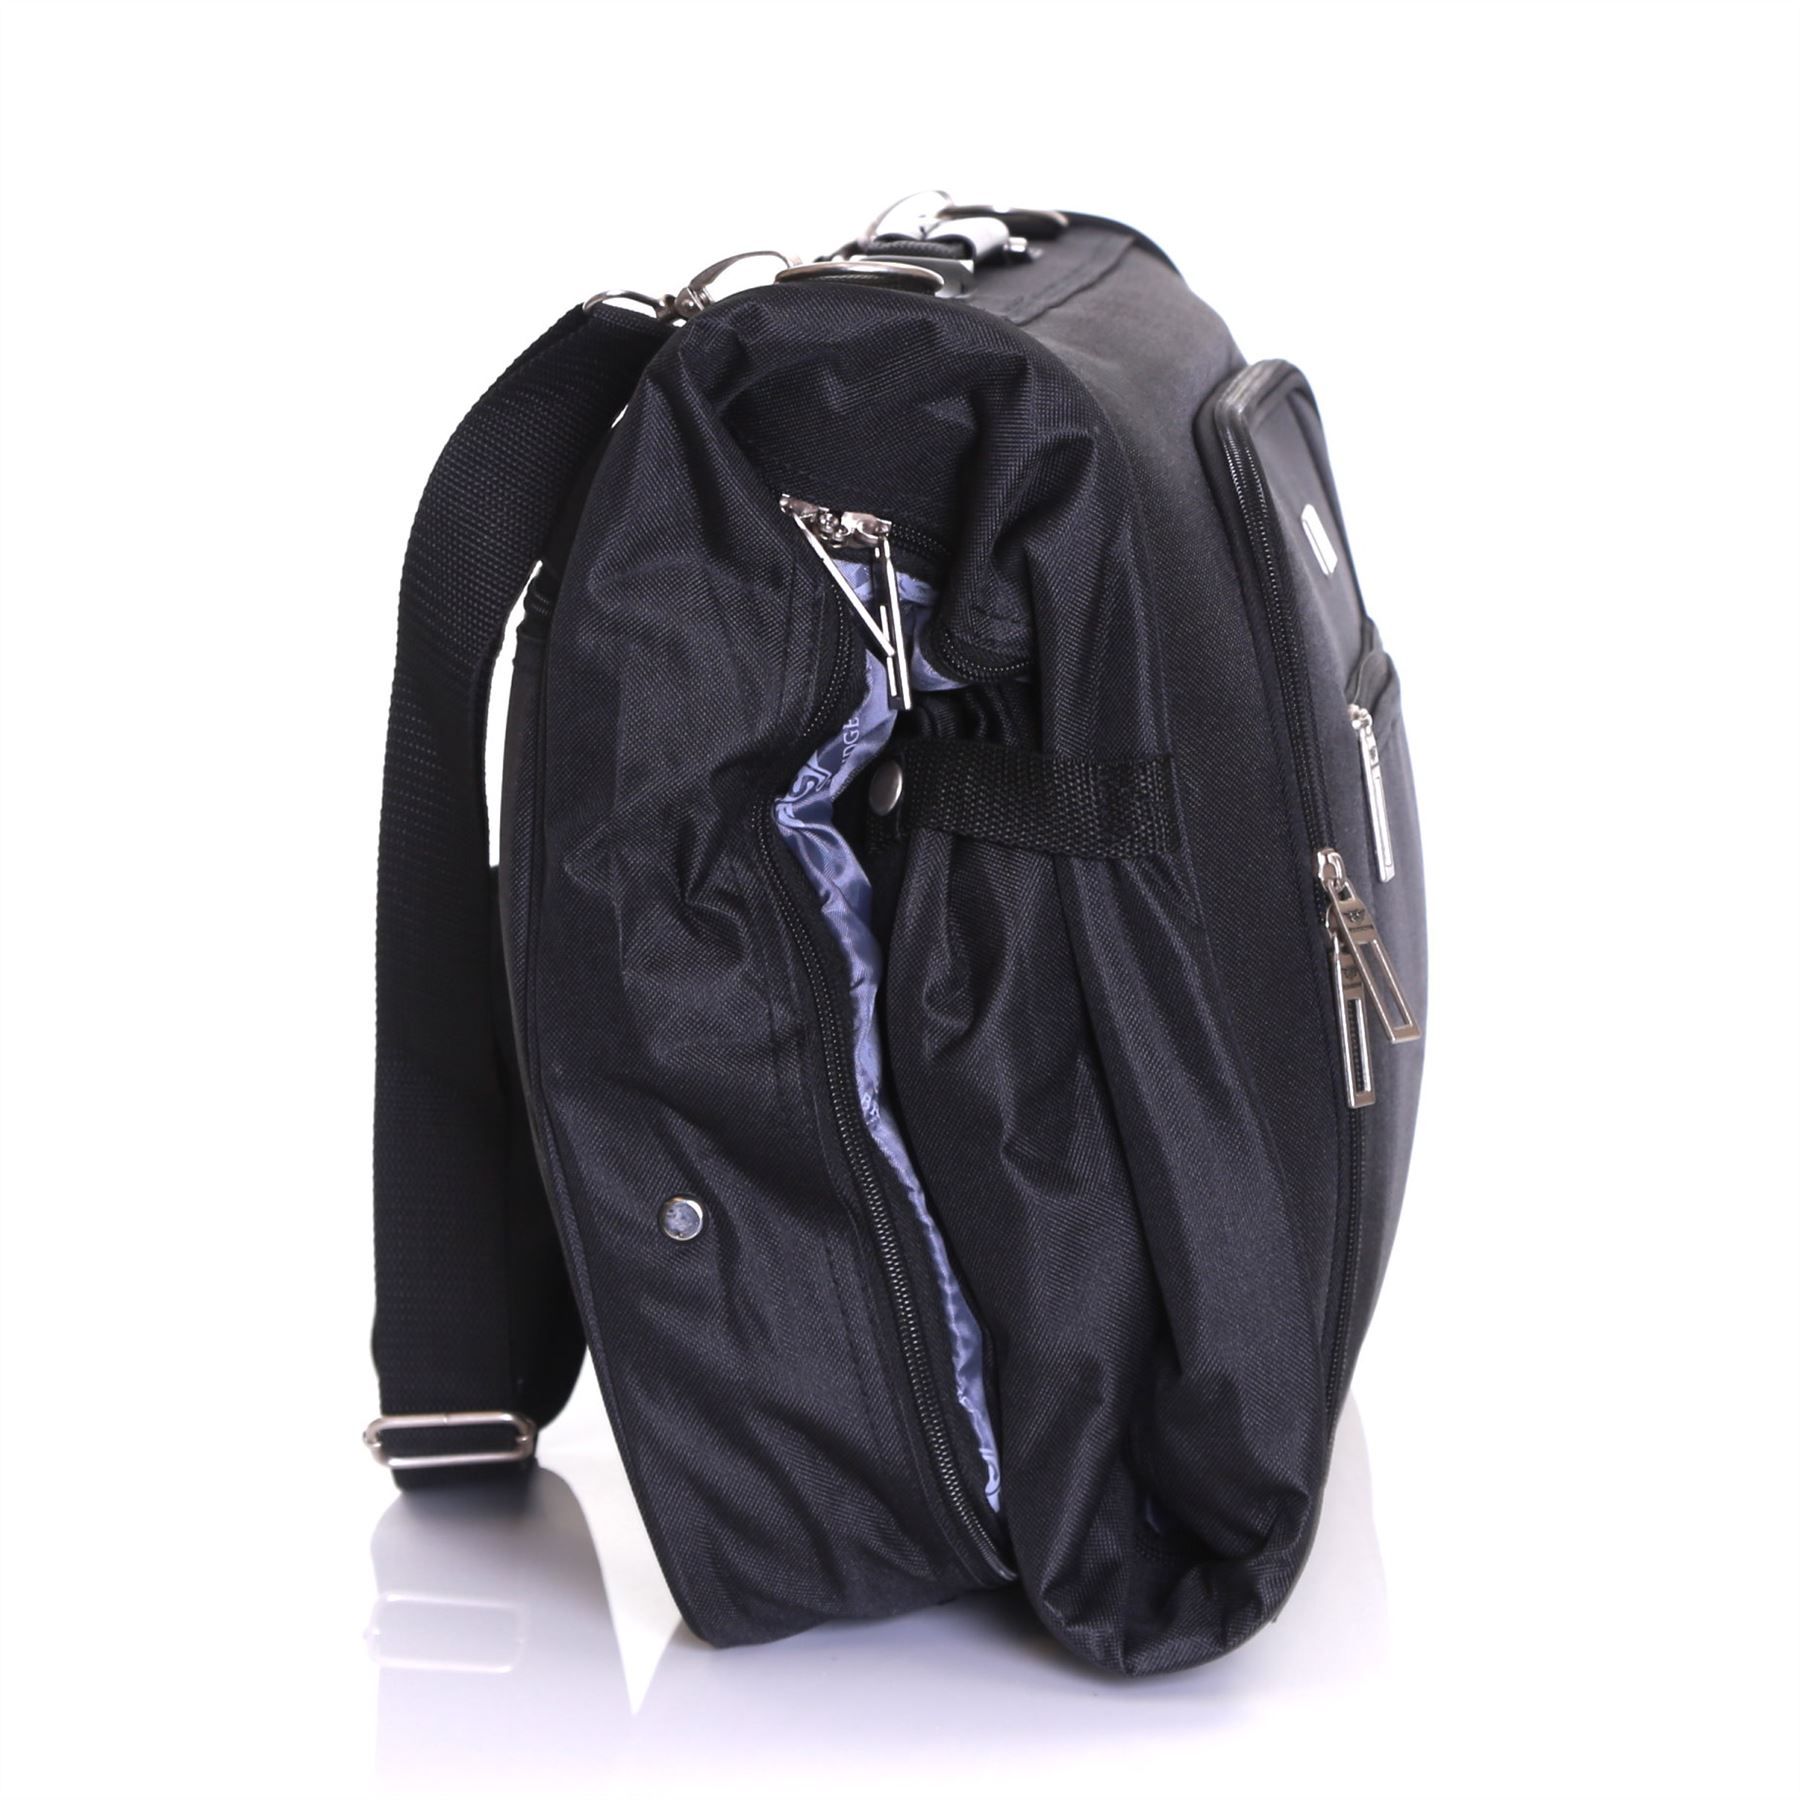 Cabin-Carry-On-Travel-Hand-Luggage-Suit-Dress-Garment-Carrier-Suiter-Cover-Bag